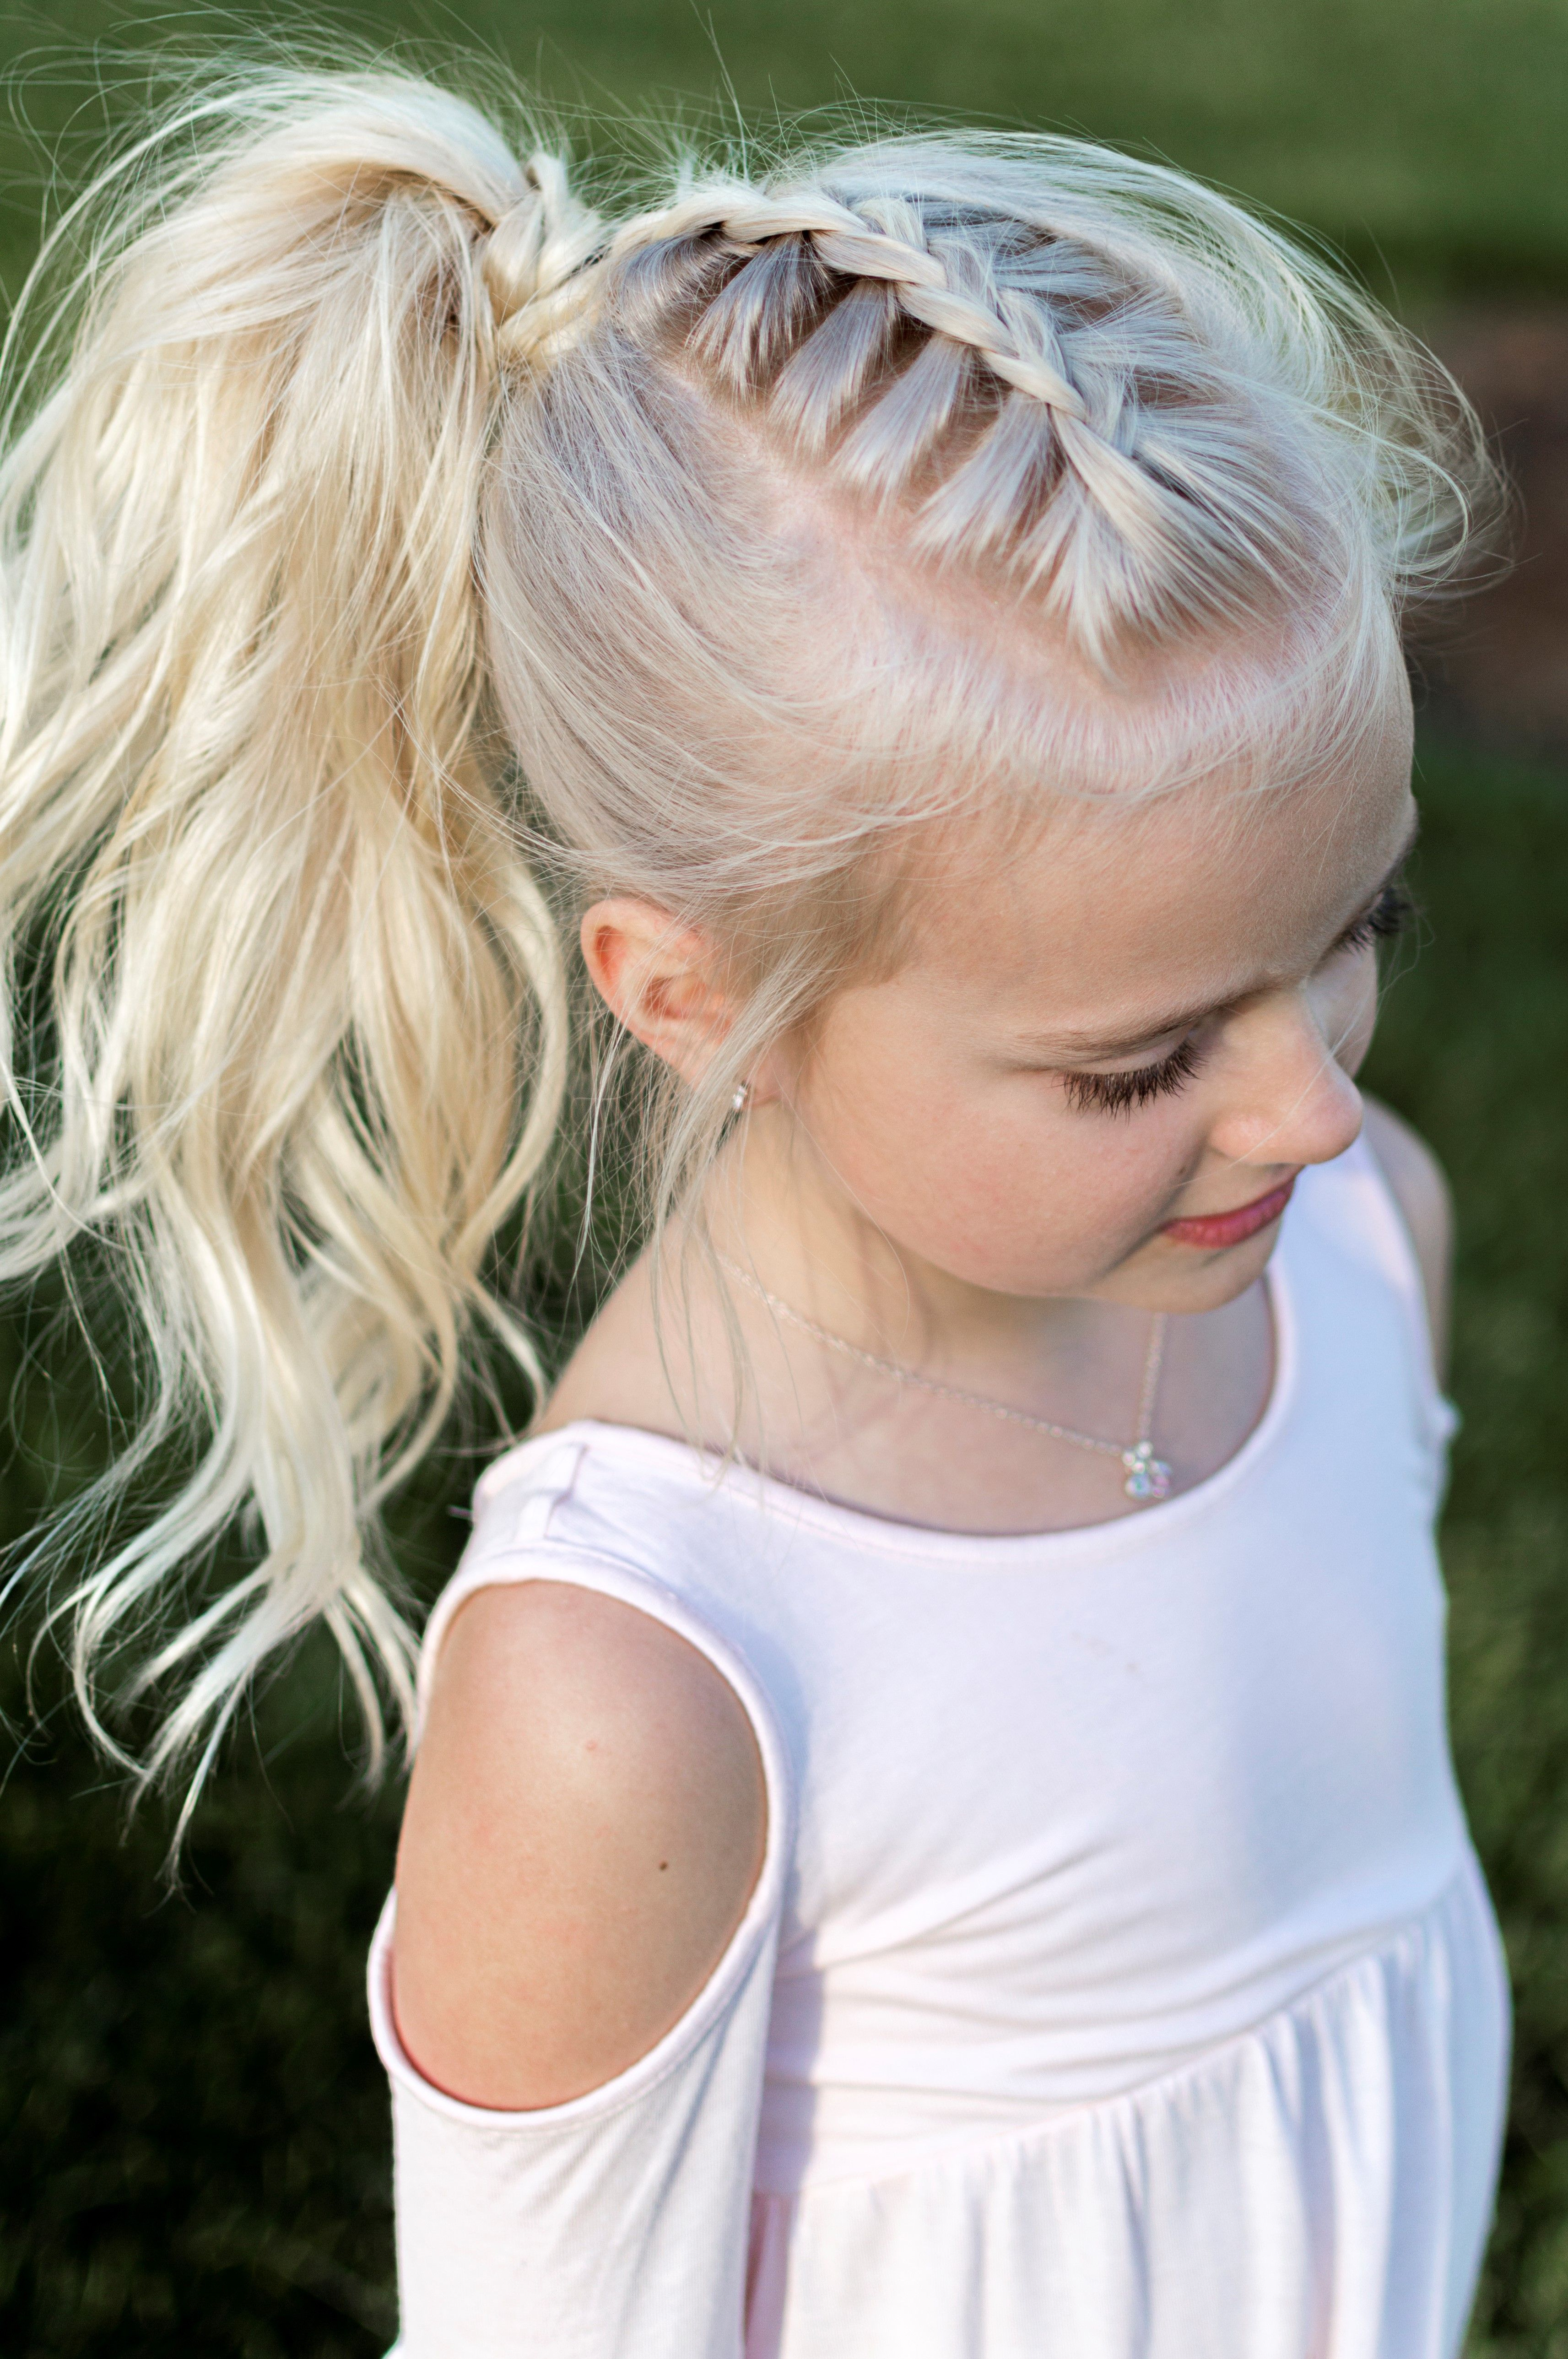 Little Girl Hairstyle French Braid Pony Tail Curls High Pony Volumized Pony Hair Blonde Platinum Little Girl Hairstyles Girl Hairstyles Girls School Hairstyles